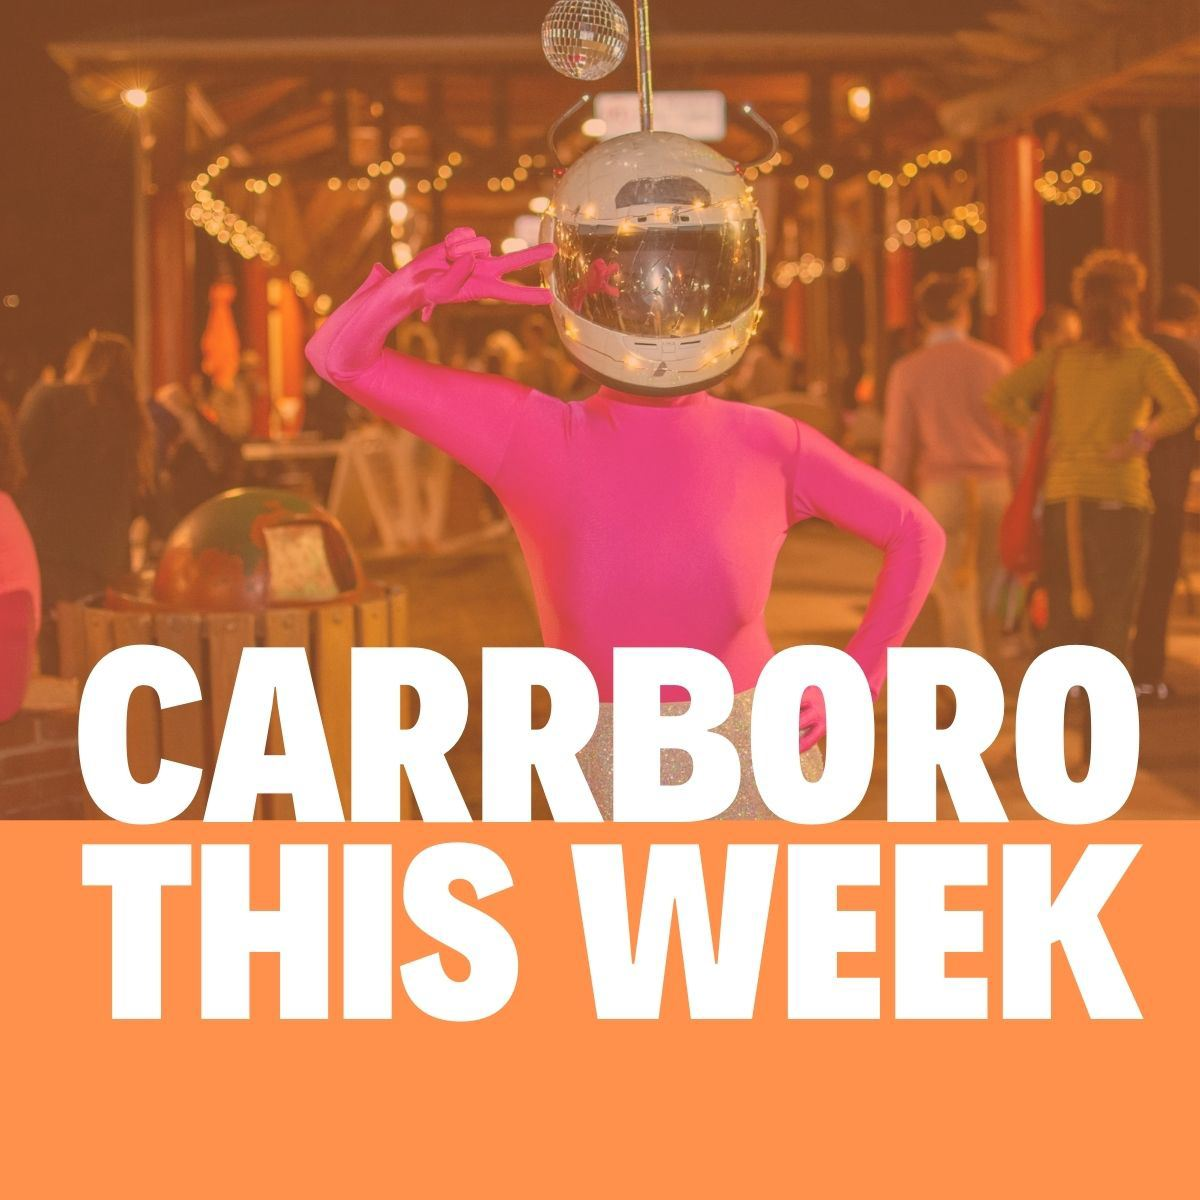 Carrboro This Week Oct 30